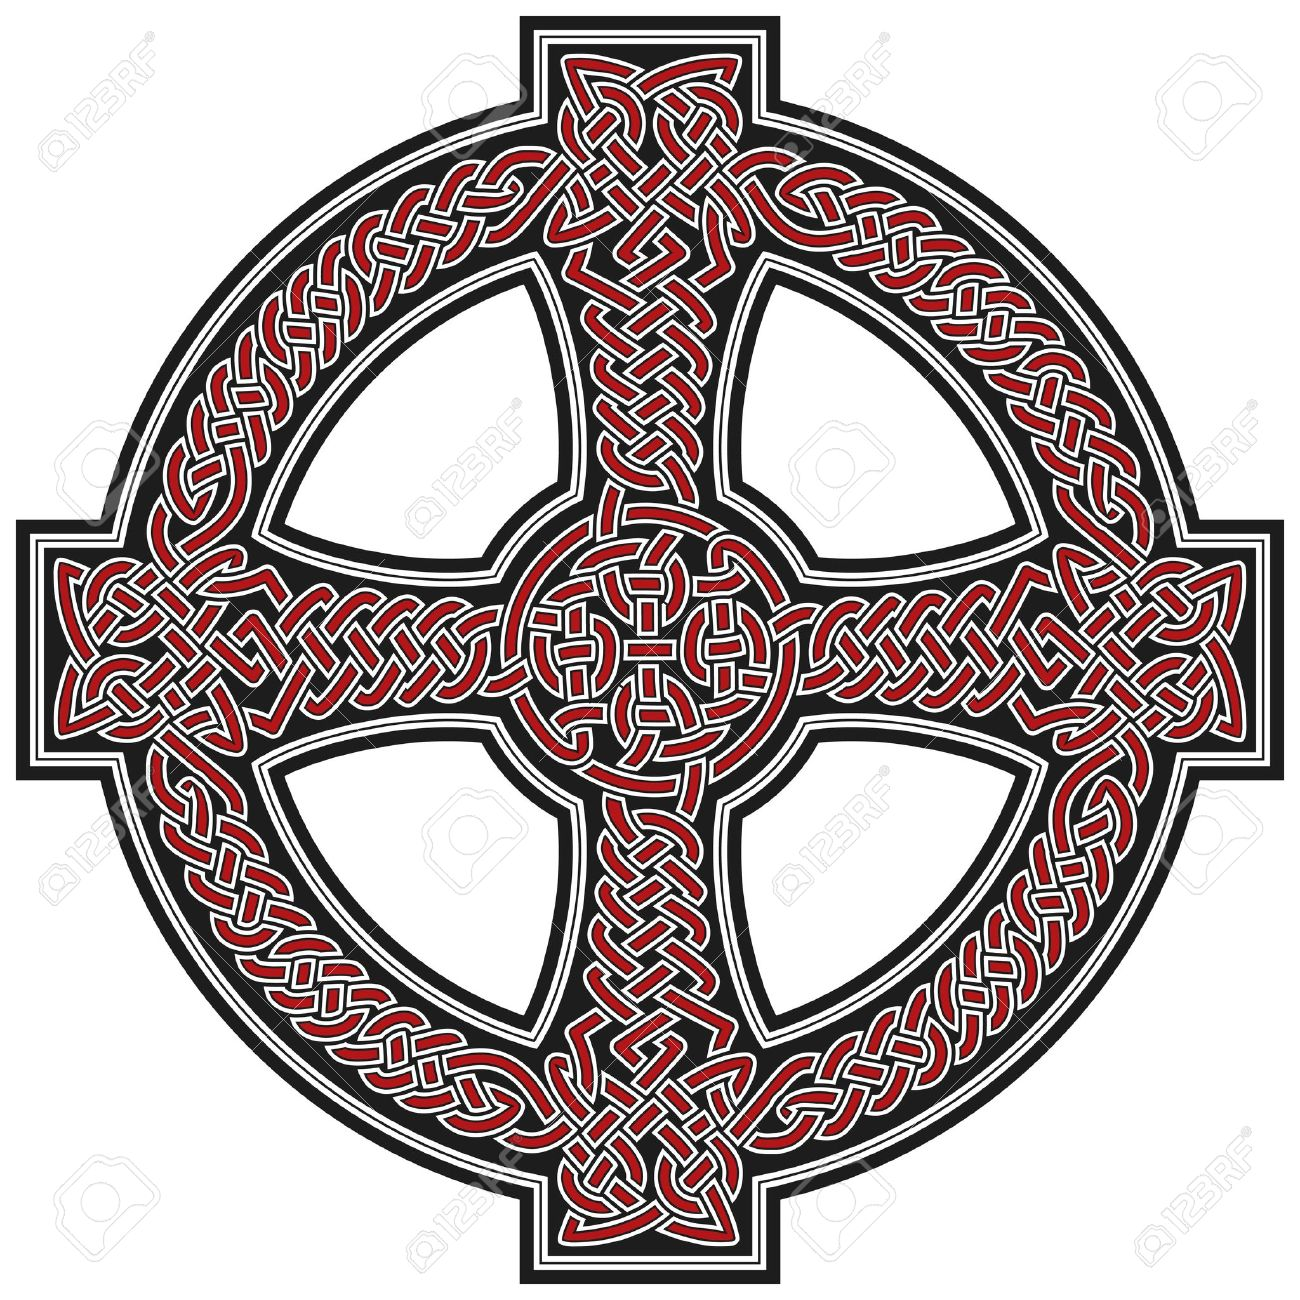 Celtic Cross Design Element Royalty Free Cliparts Vectors And Stock Illustration Image 8504047